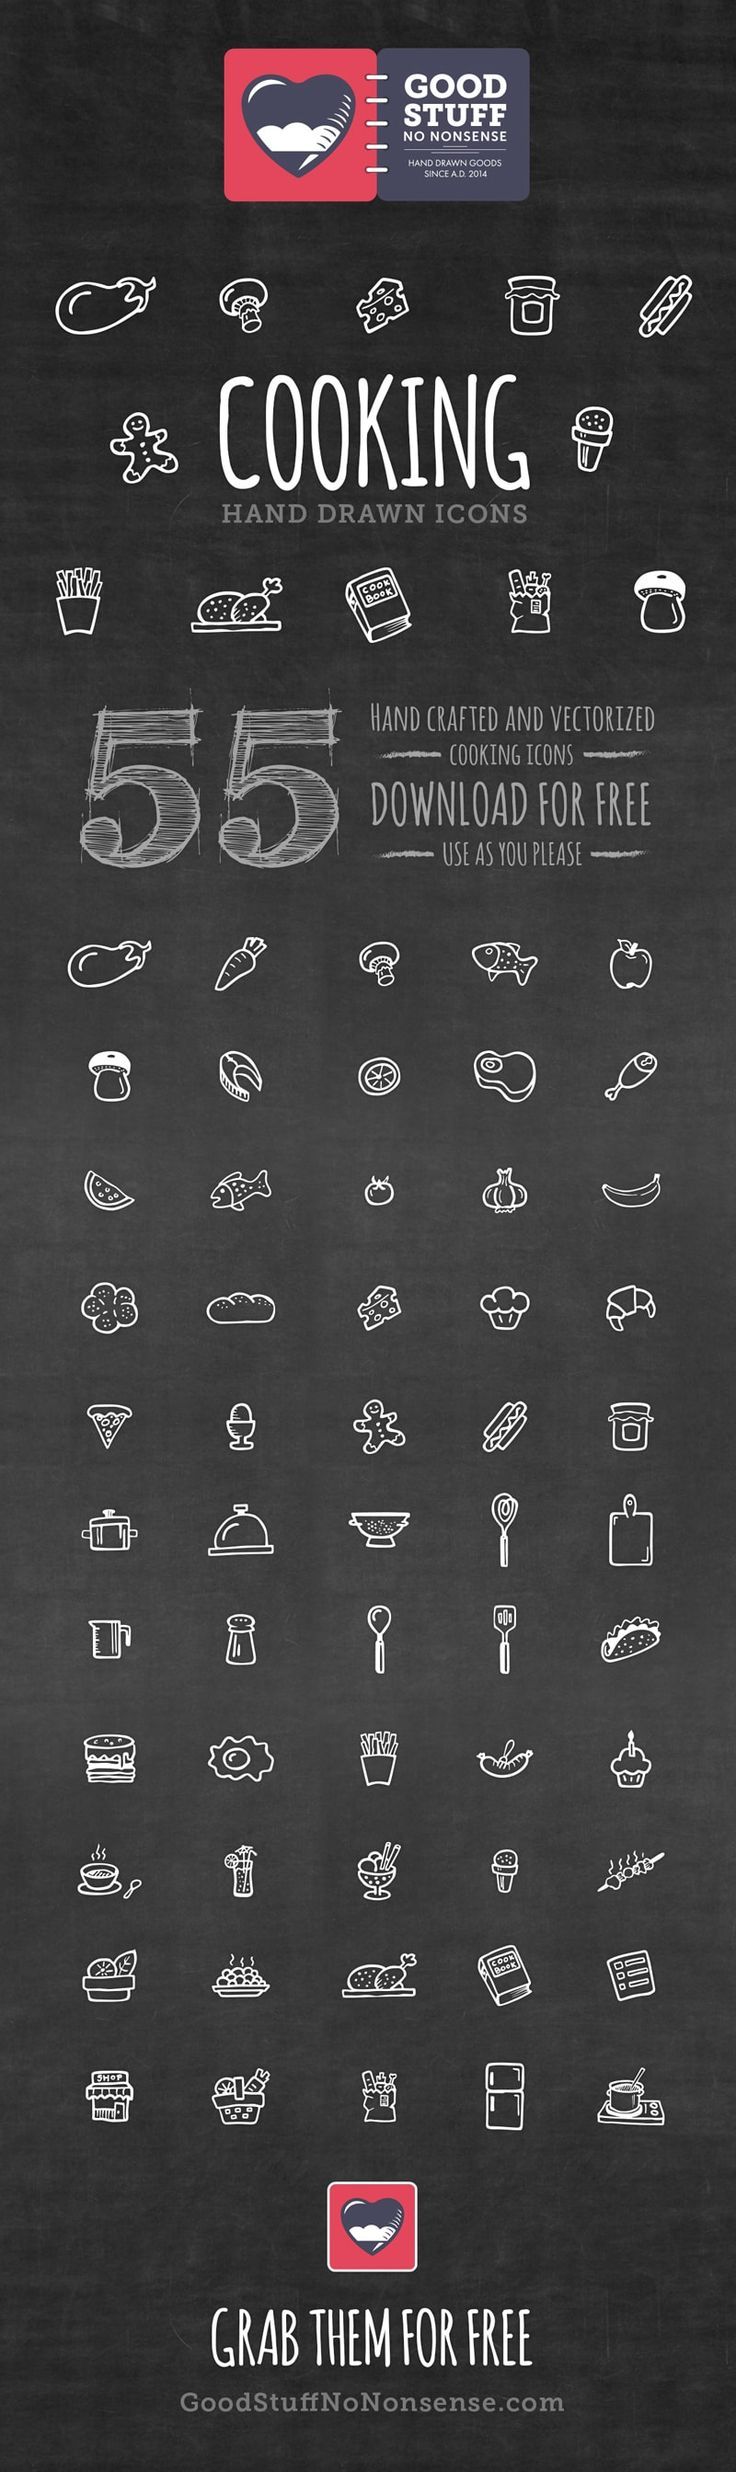 Free Cooking Icons - Hand Drawn Icons